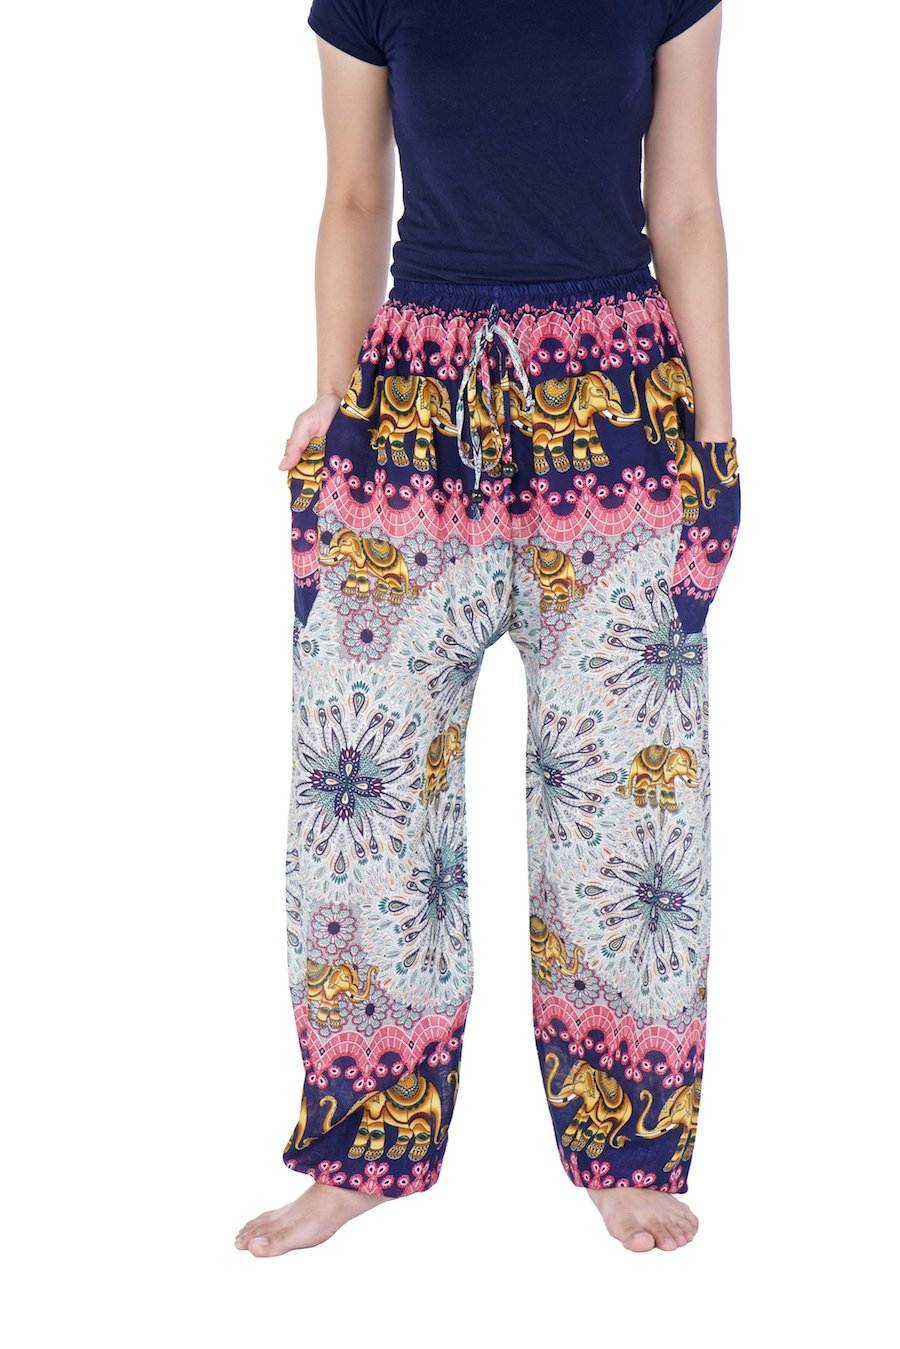 Lannaclothesdesign Drawstring Harem Pants S M L XL XXL Sizes Hippie Lounge Trousers (M, Dark Blue Elephant Mandala)